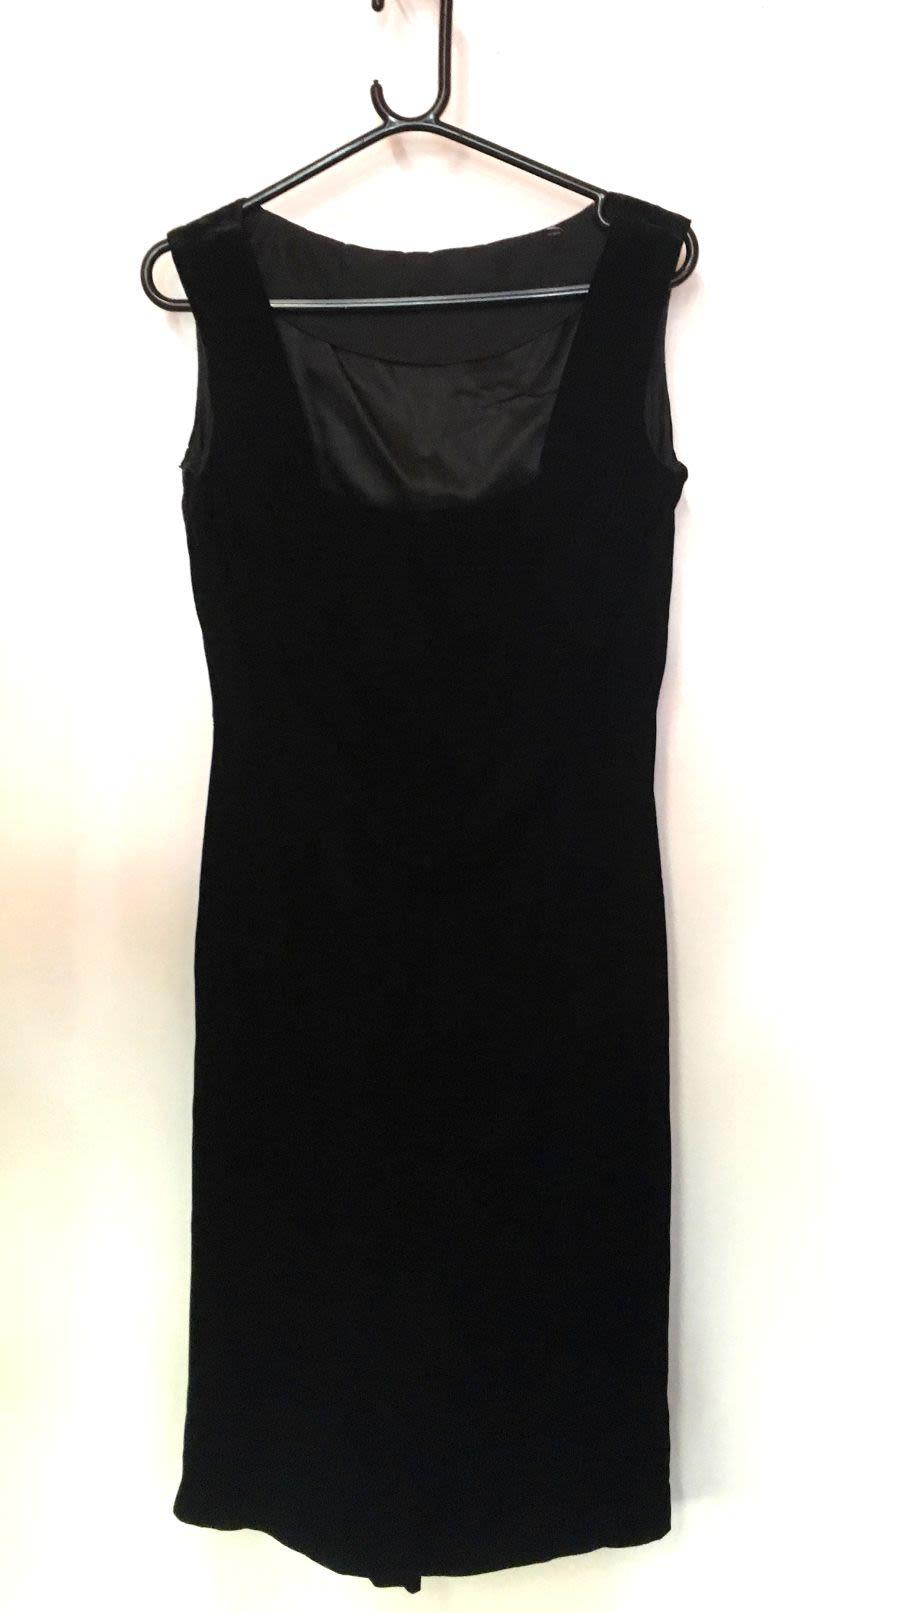 Vintage 1980's Black Velvet Drape Detail Wiggle Fit Dress